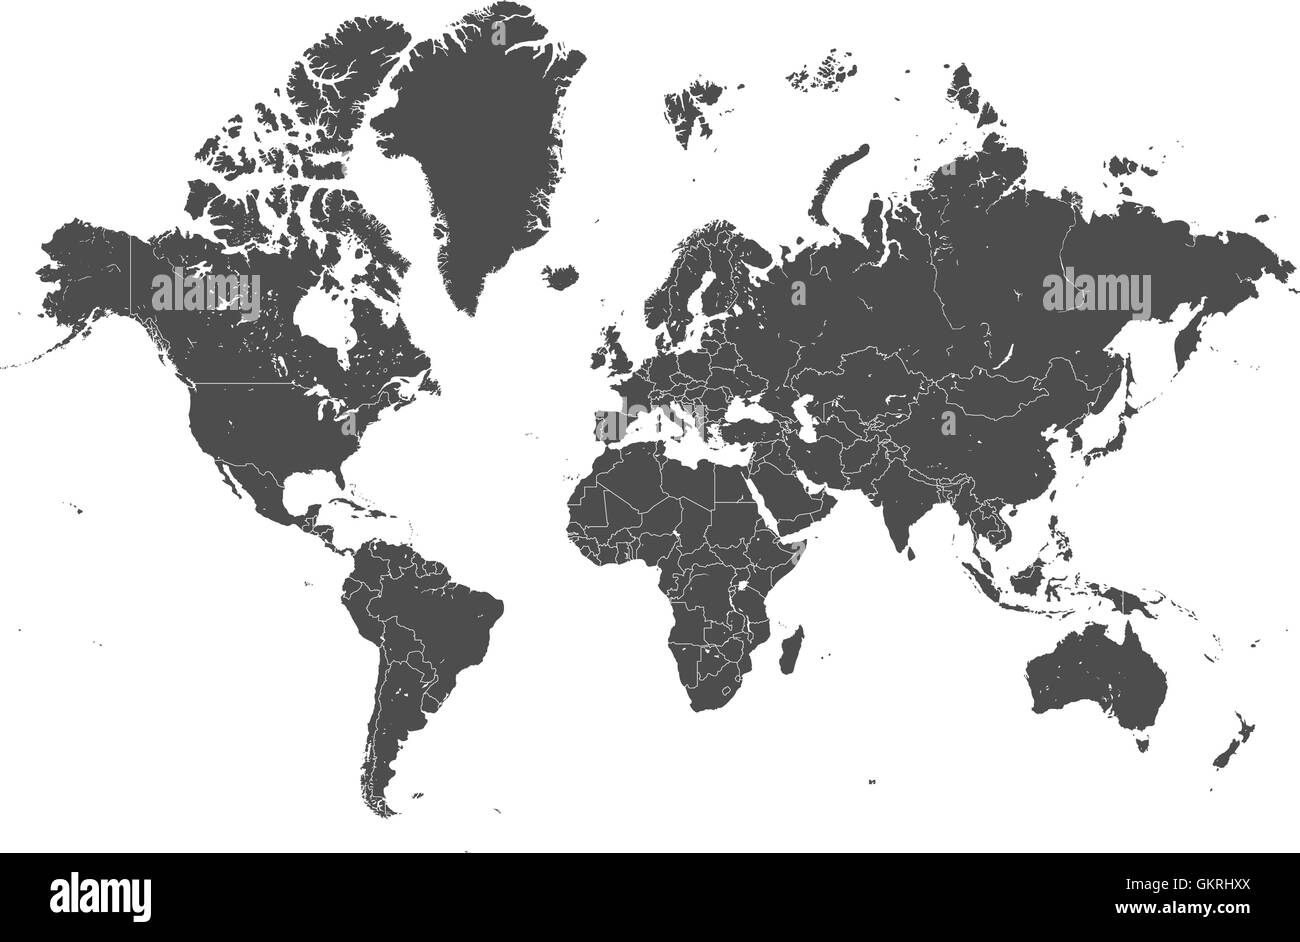 World map with gray borders vector stock vector art illustration world map with gray borders vector gumiabroncs Image collections